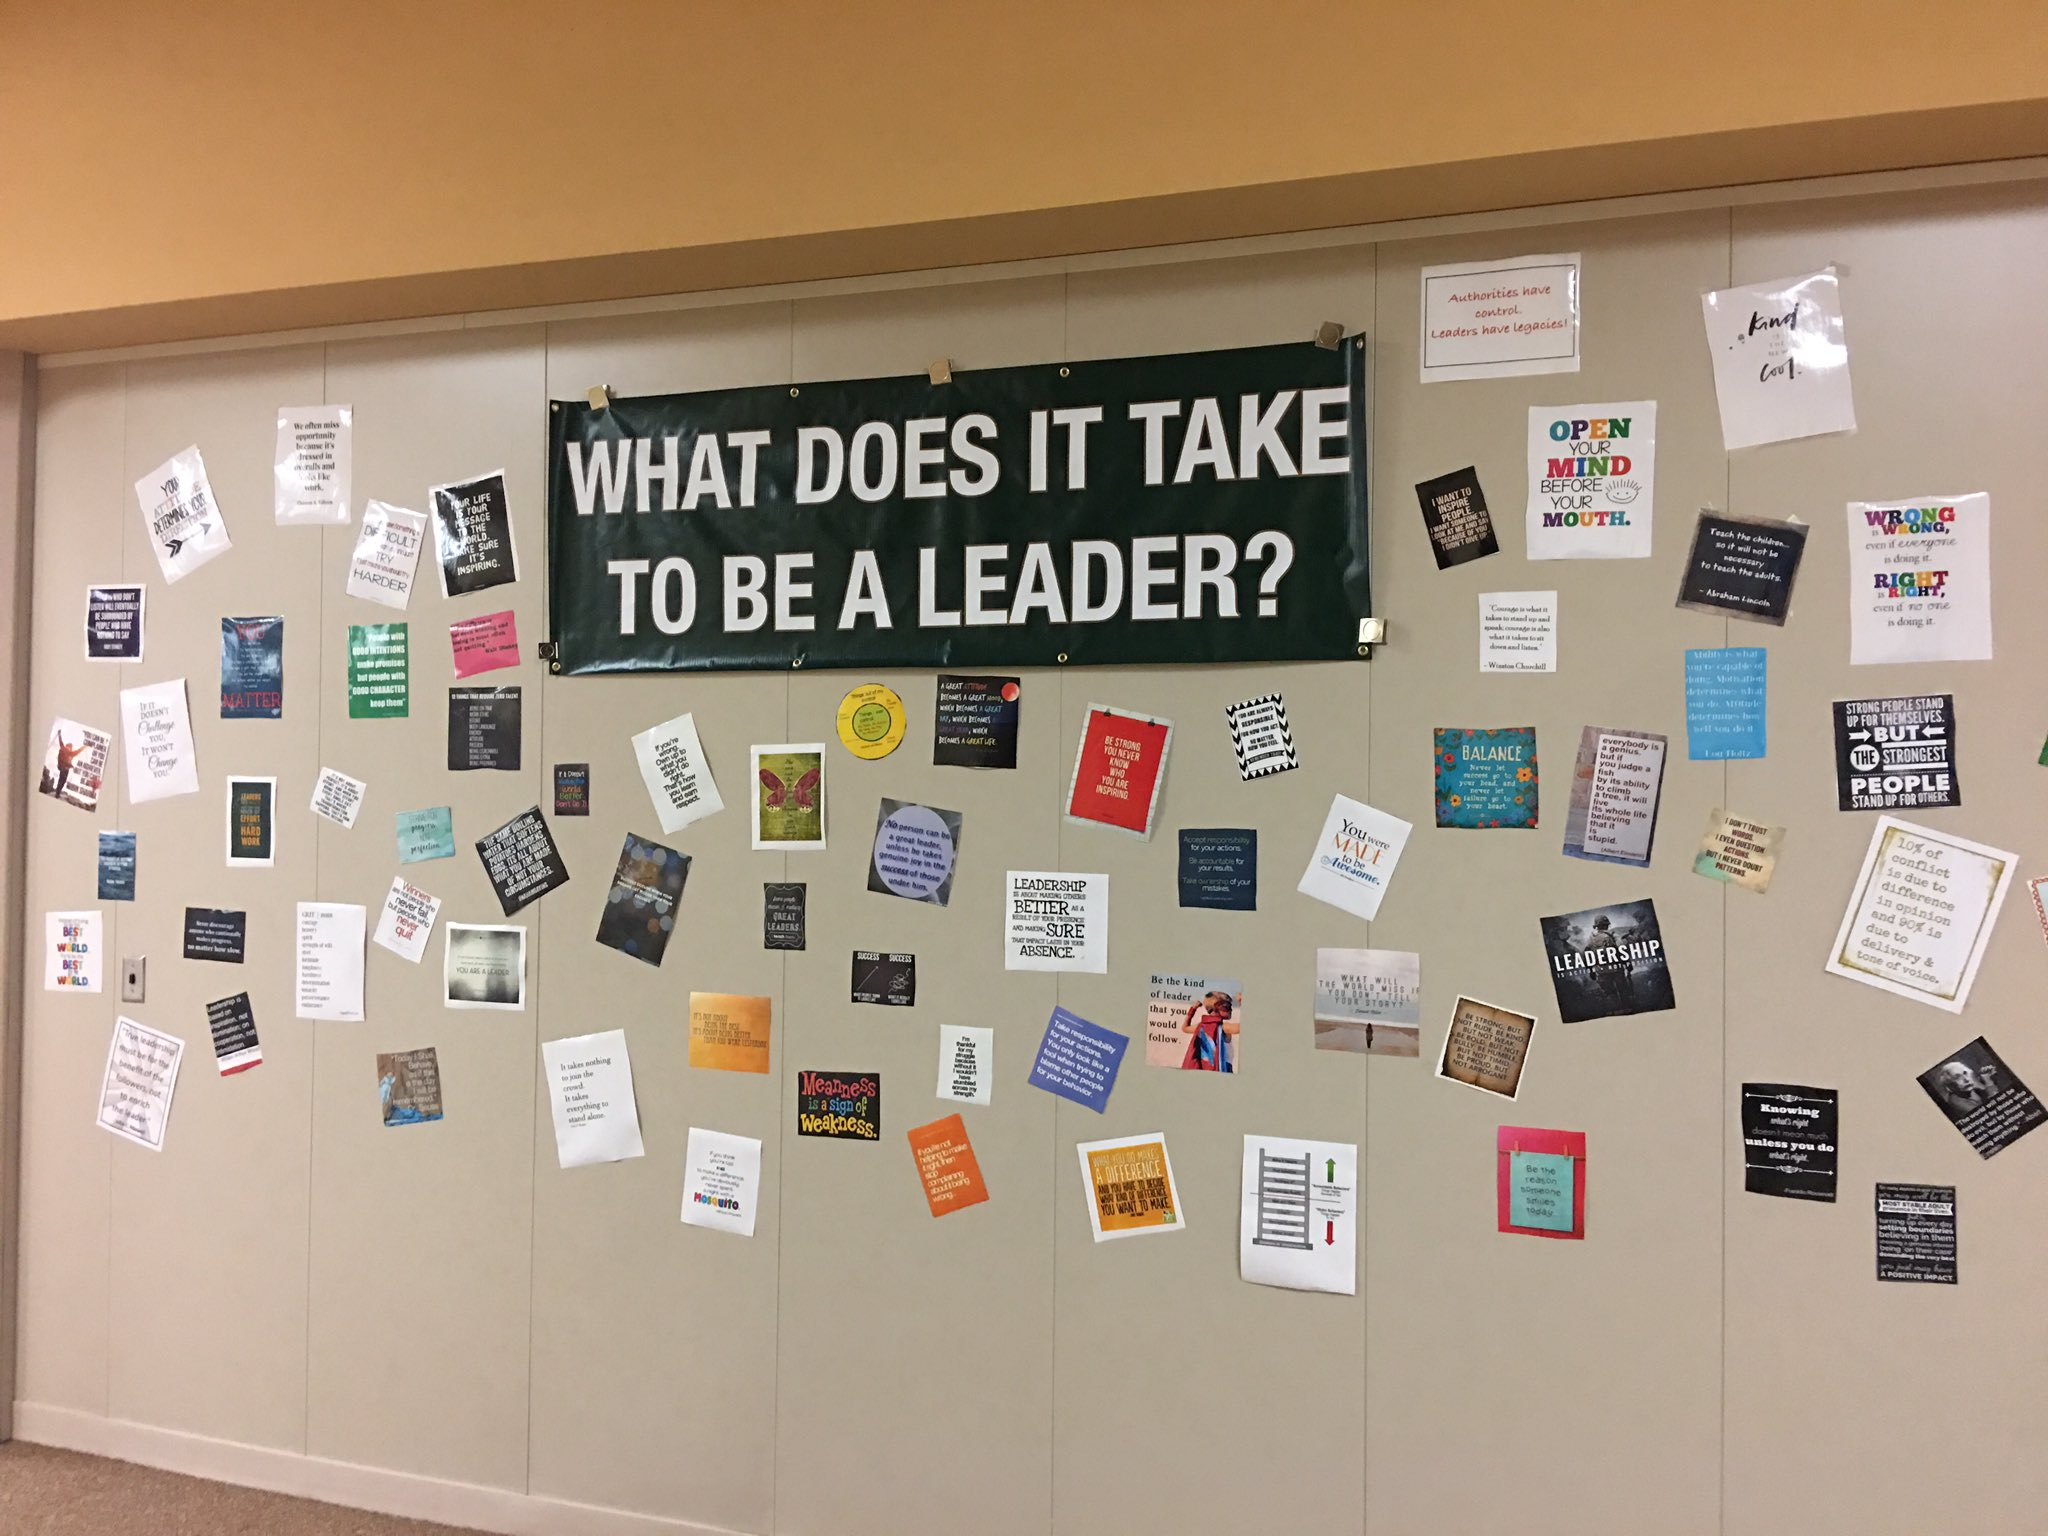 Reinforcing positivity and leadership at @KarrerMS  #theDublinDifference https://t.co/CYRFZuvviS